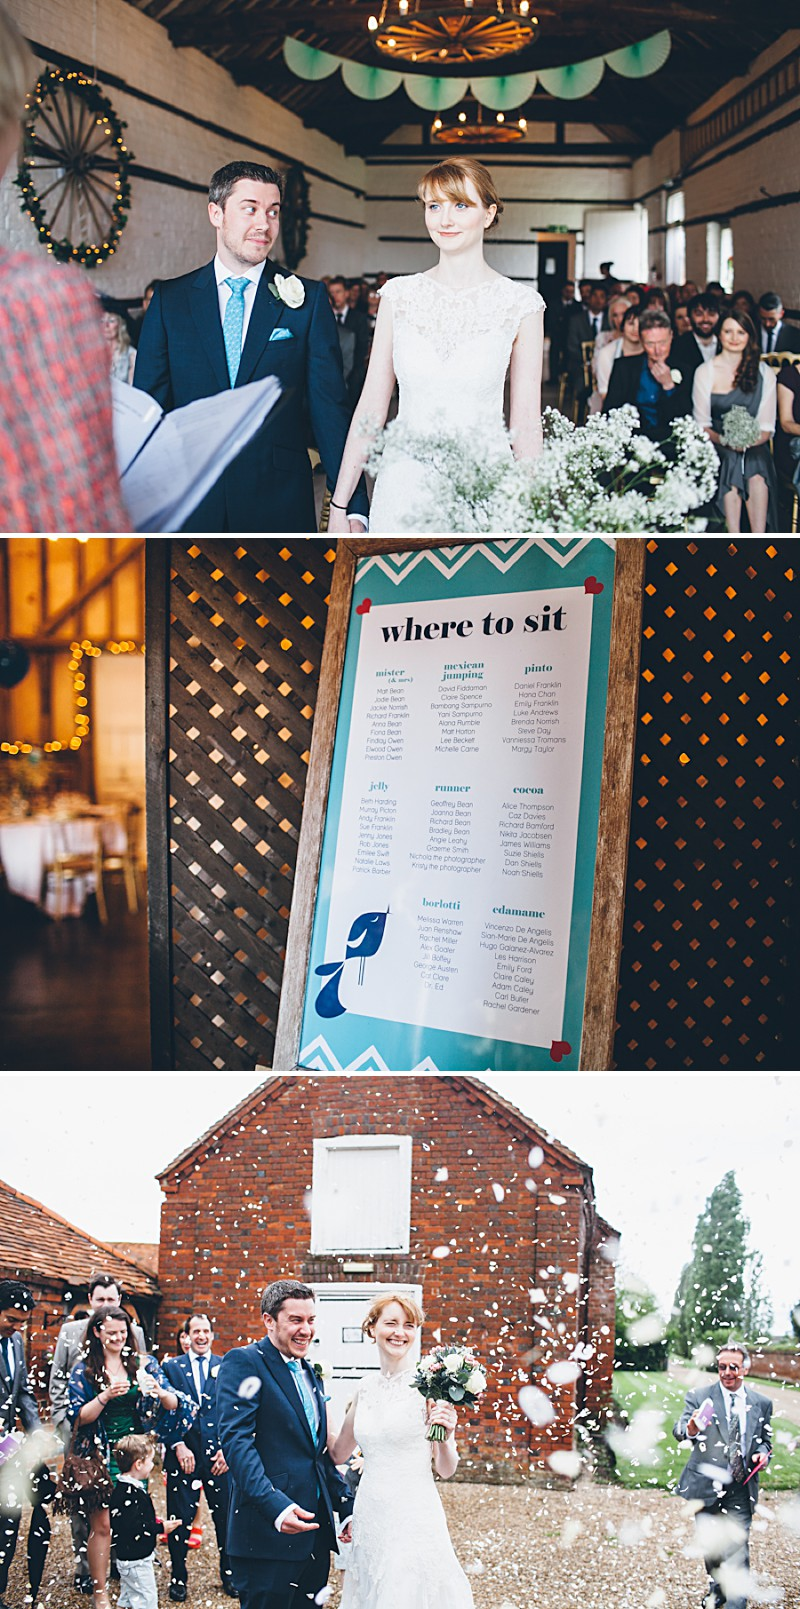 A modern contemporary barn wedding with bright colour scheme Essence of Australia dress and reiss suit.  Home made decorations and DIY elements. Photography by Lemonade Pictures_0007